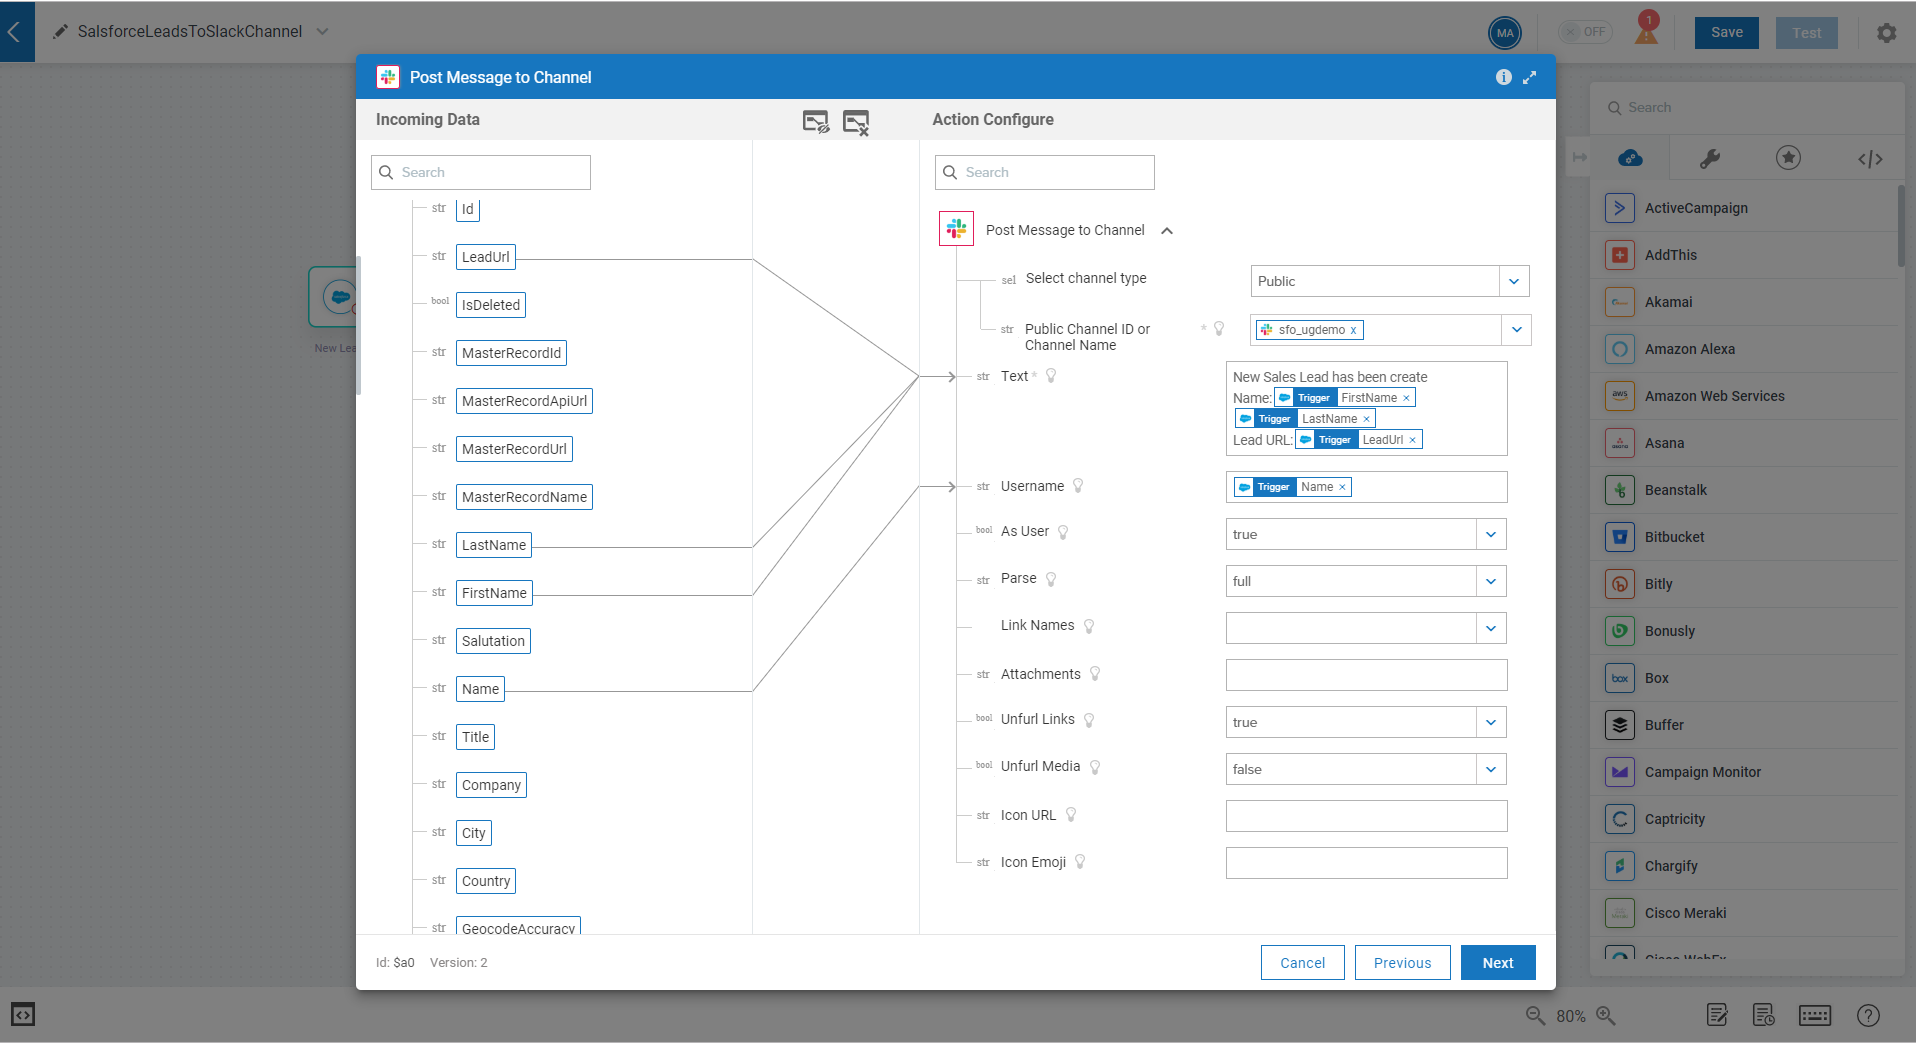 SalesforceLeadToSlackMapping